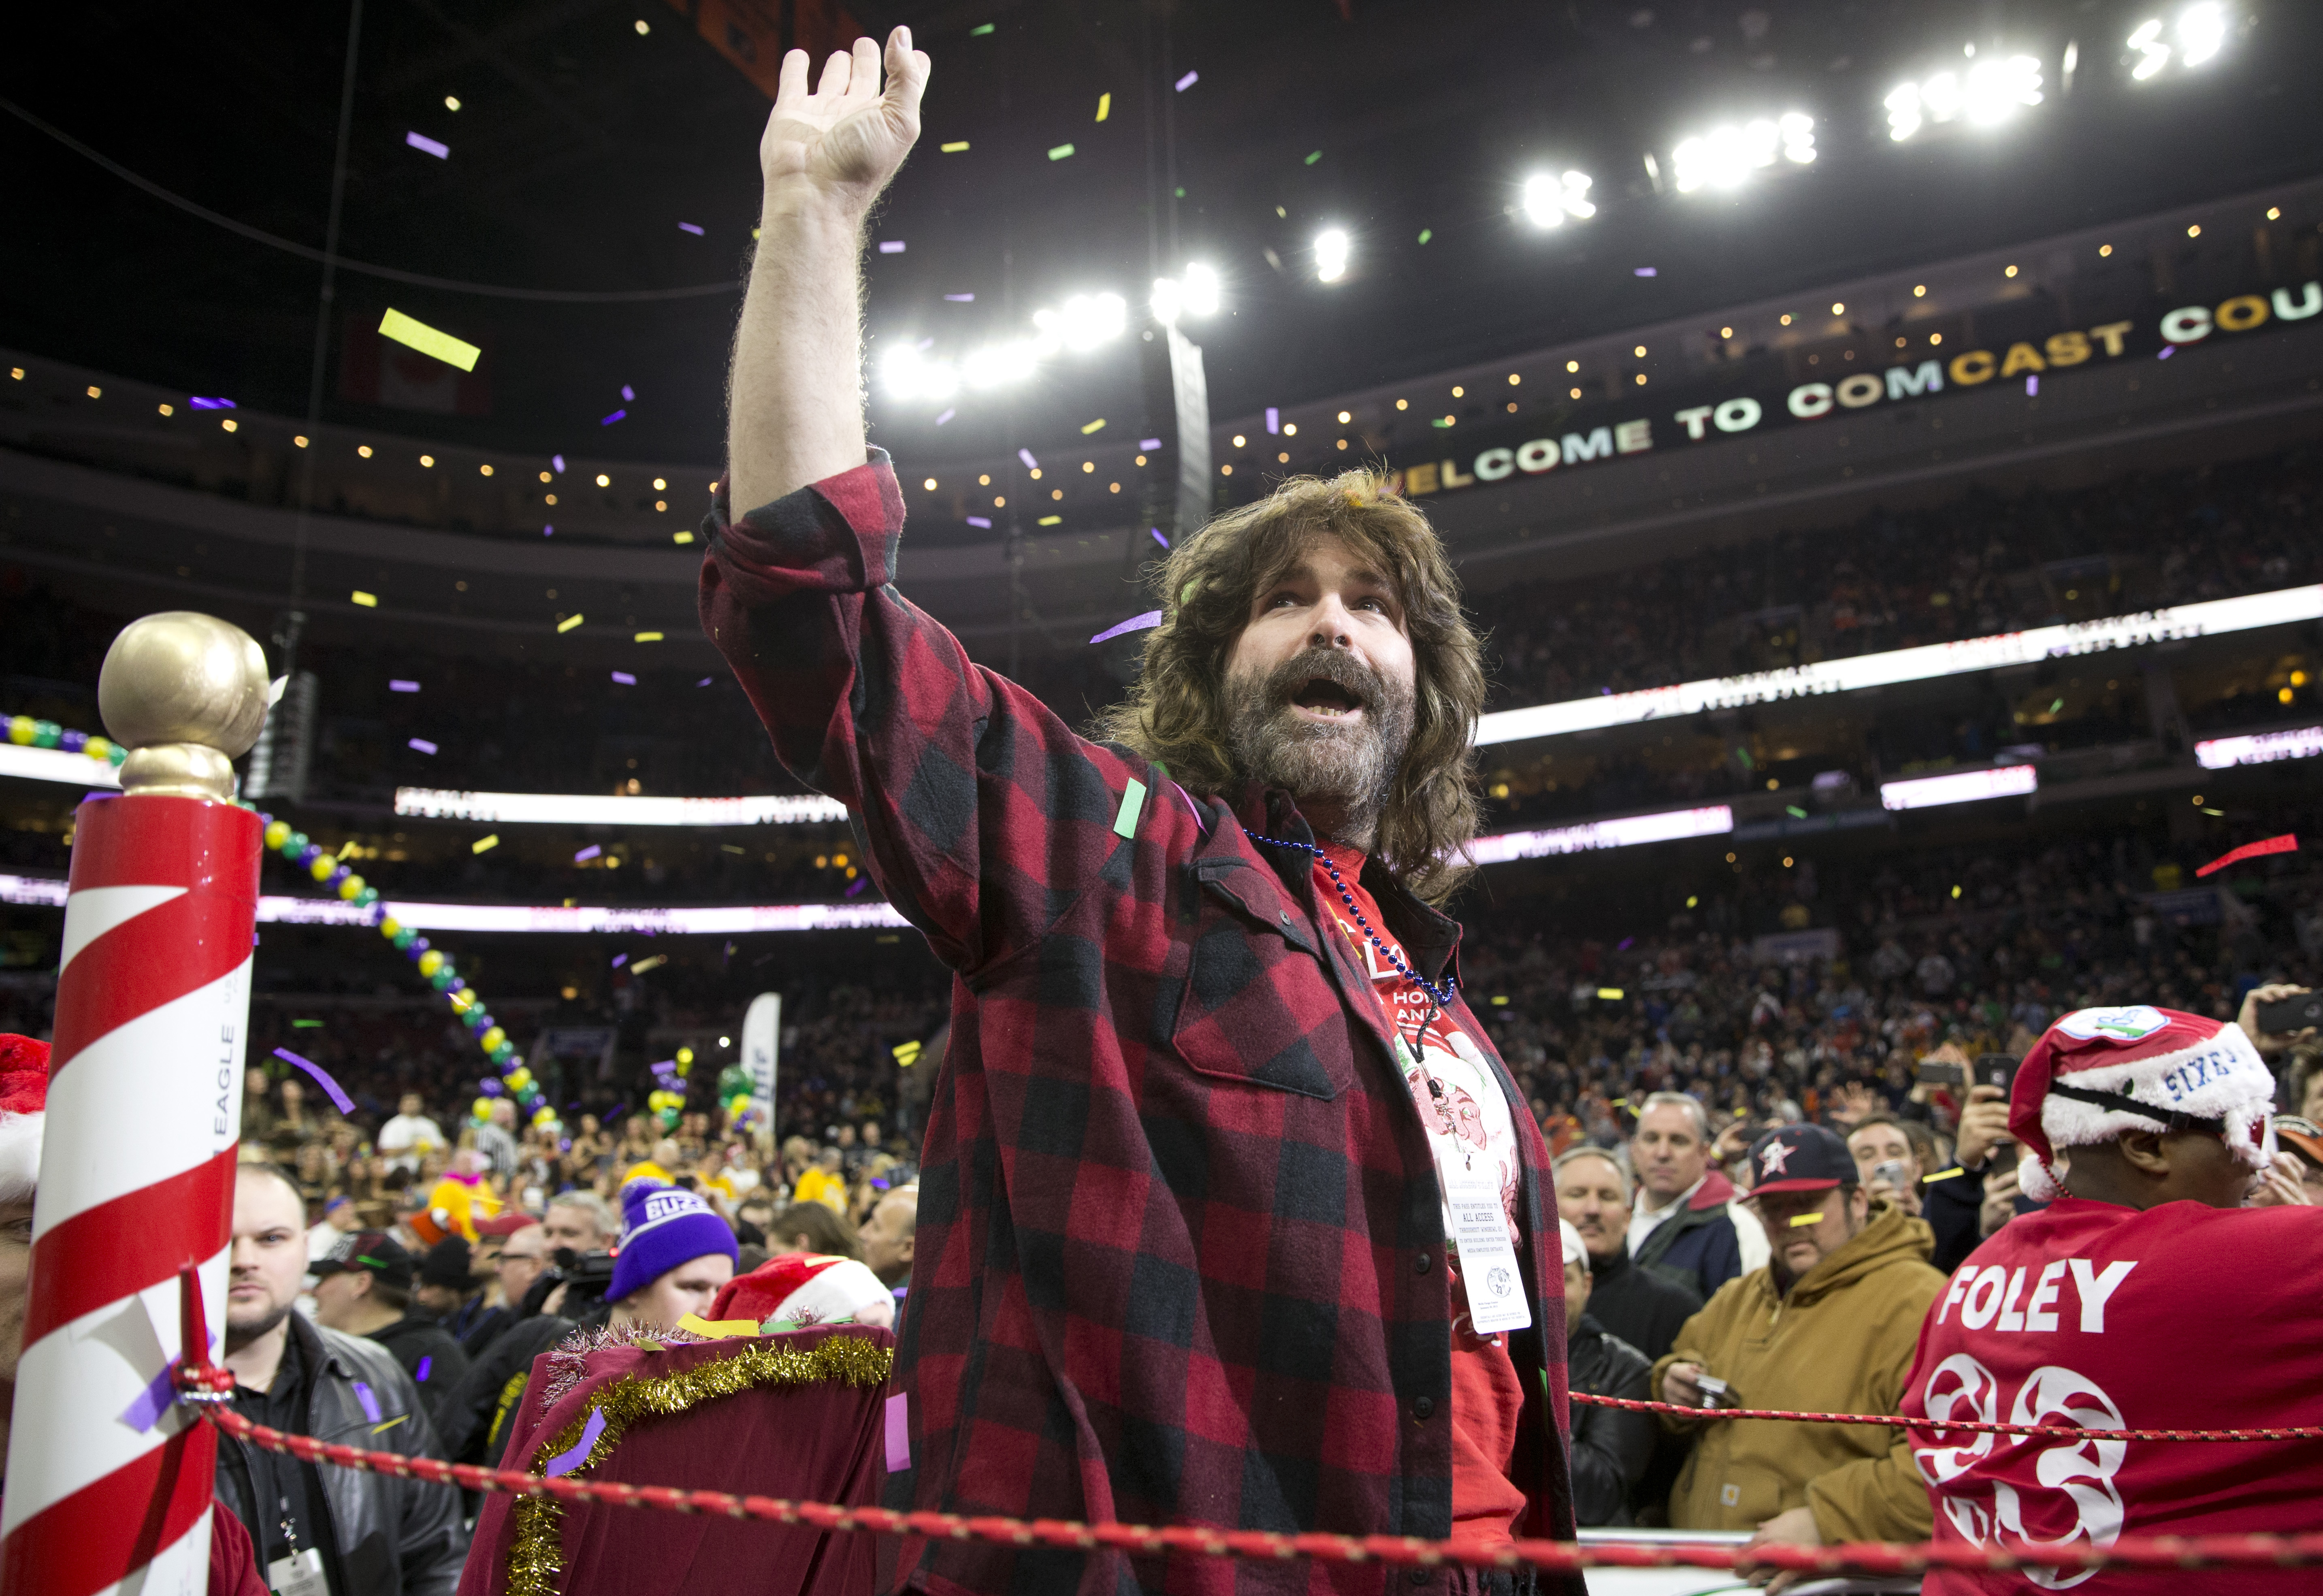 Professional wrestler Mick Foley participates in Wing Bowl 23 on January 30, 2015 at the Wells Fargo Center in Philadelphia, Pennsylvania.